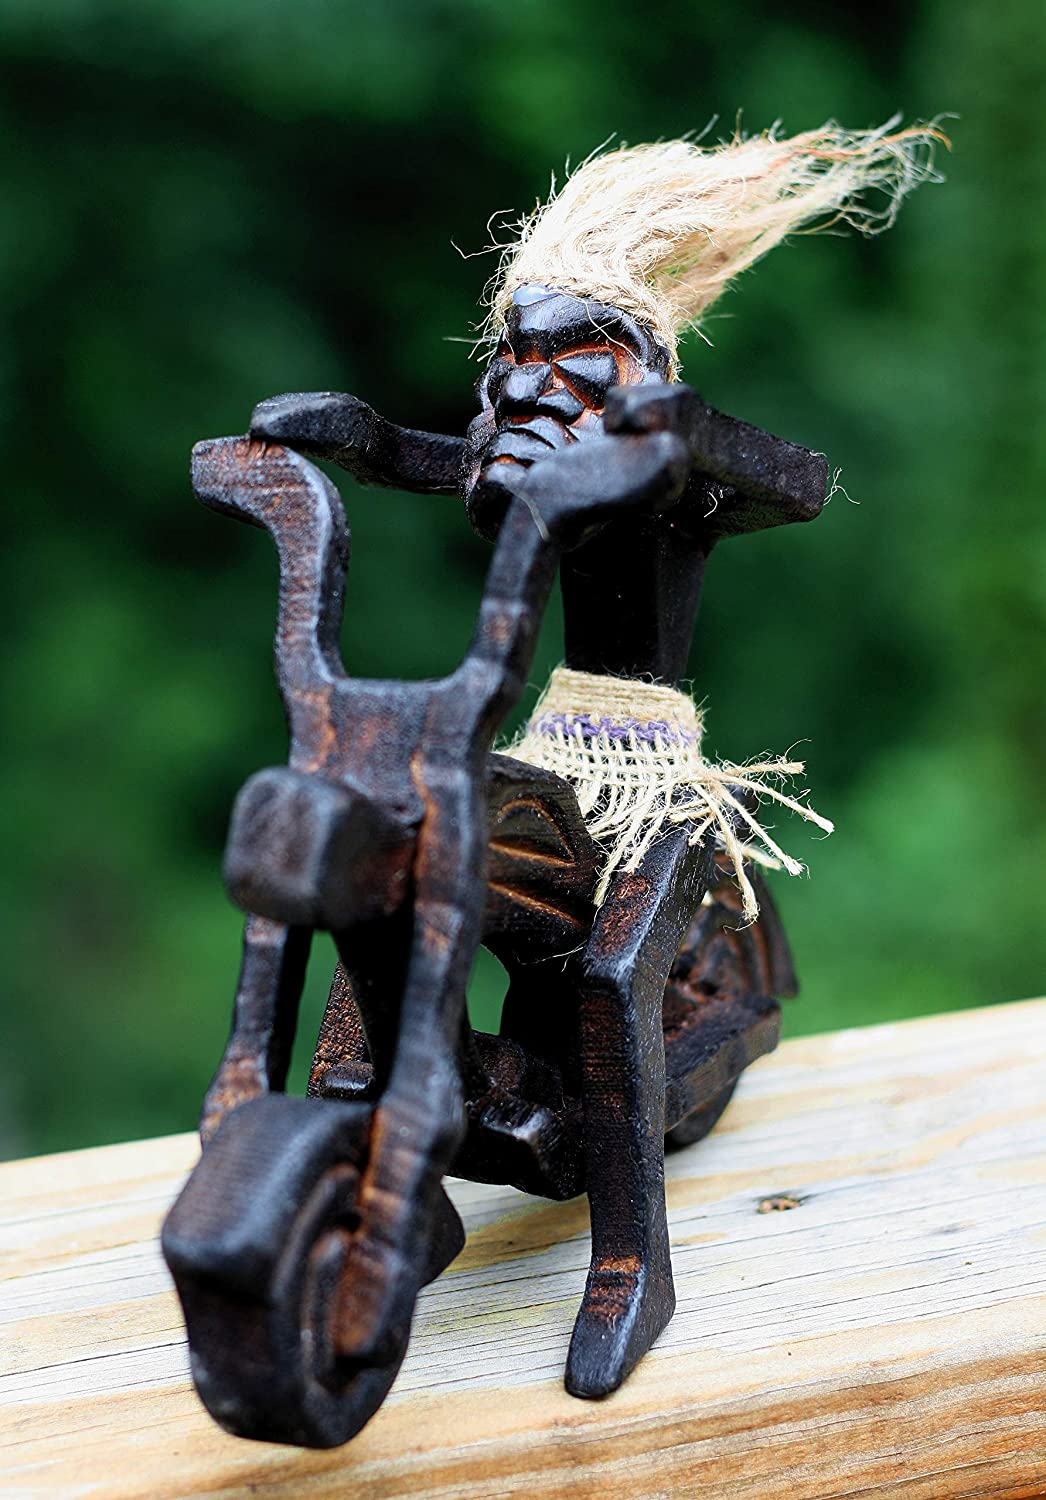 G6 Collection Handmade Wooden Single Primitive Tribal Funny Statue Riding Harley Davidson Motorcycle Sculpture Tiki Bar Unique Gift Decorative Home Decor Figurine Decoration Hand Carved Single Harley